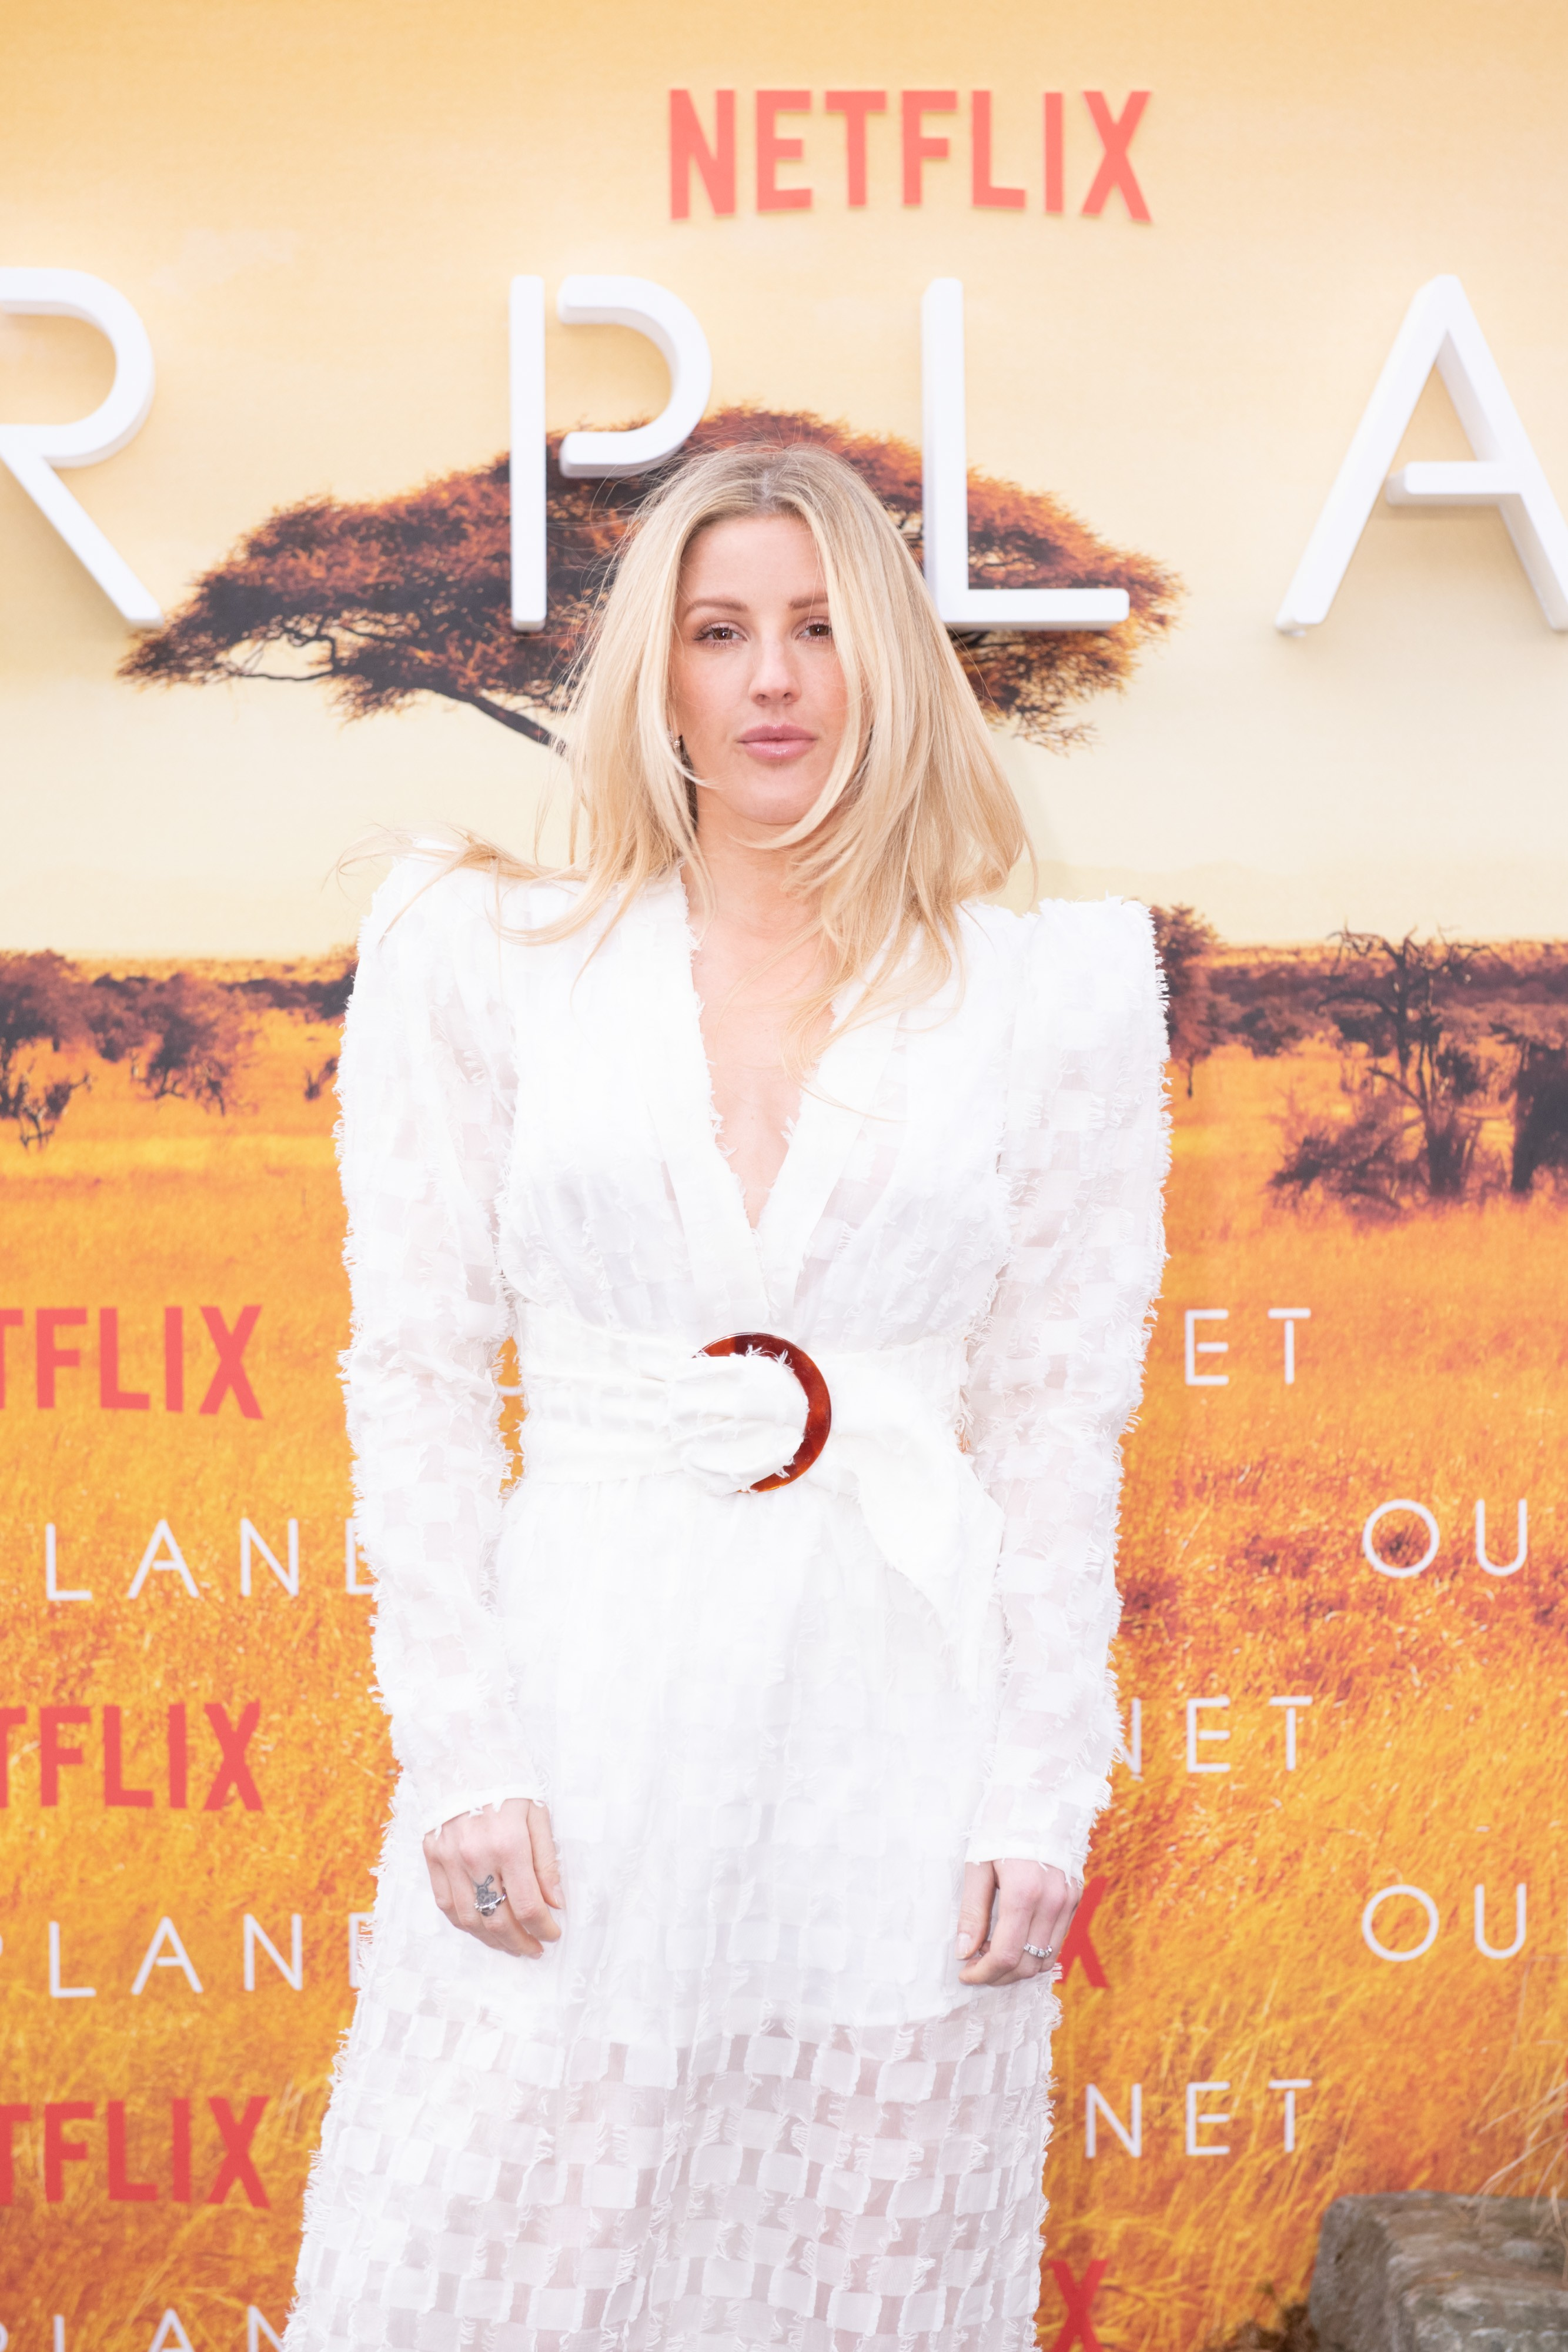 Netflix's Our Planet Royal World Premiere, London, April 2019. (L-R) Ellie Goulding